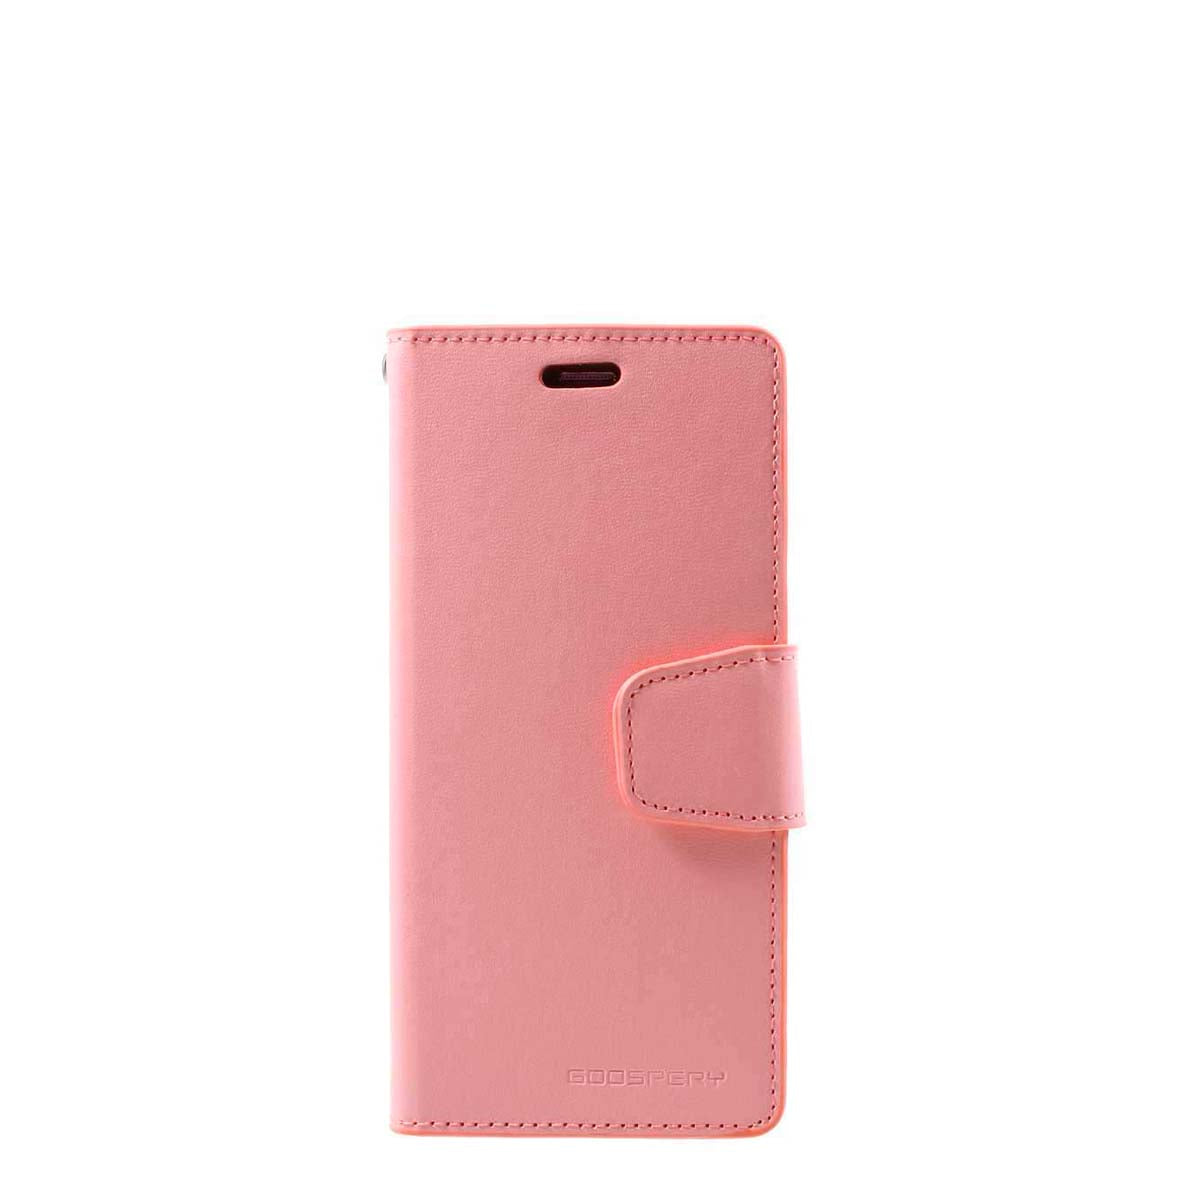 Capa de Smartphone Mercury Sonata Diary Apple iPhone 7/ 8/ SE 2020 Rosa